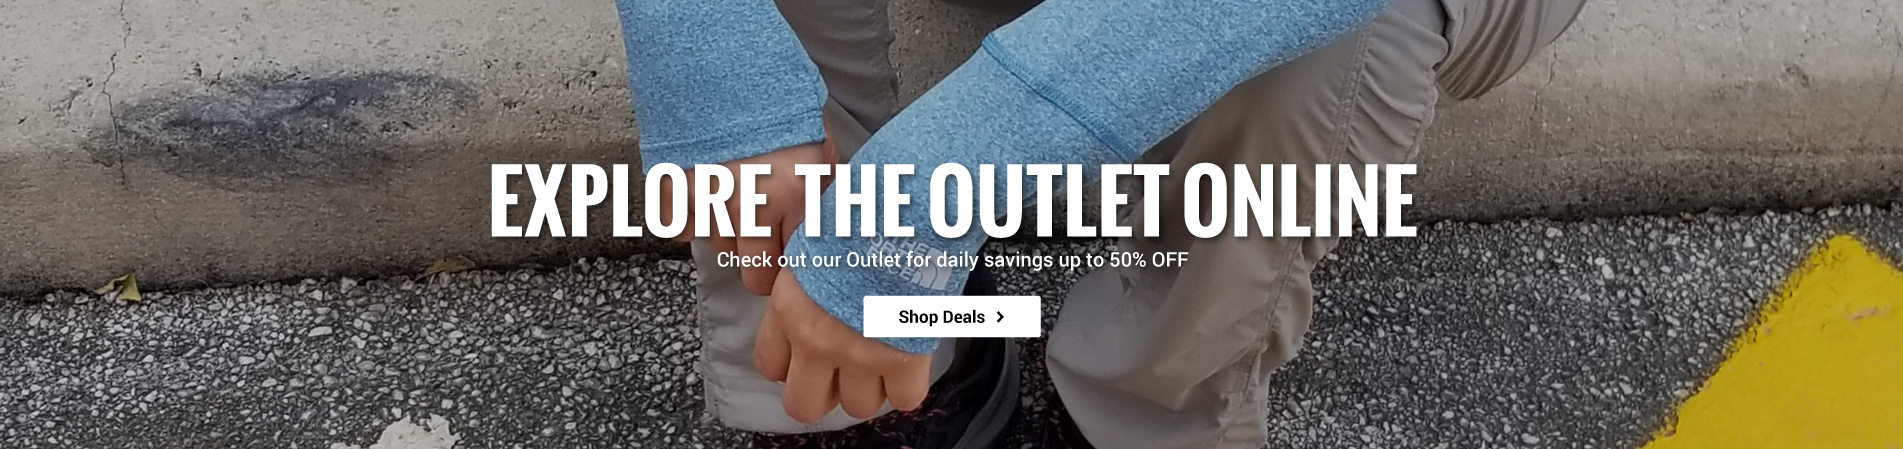 Save up to 50% off when you shop the Outlet online